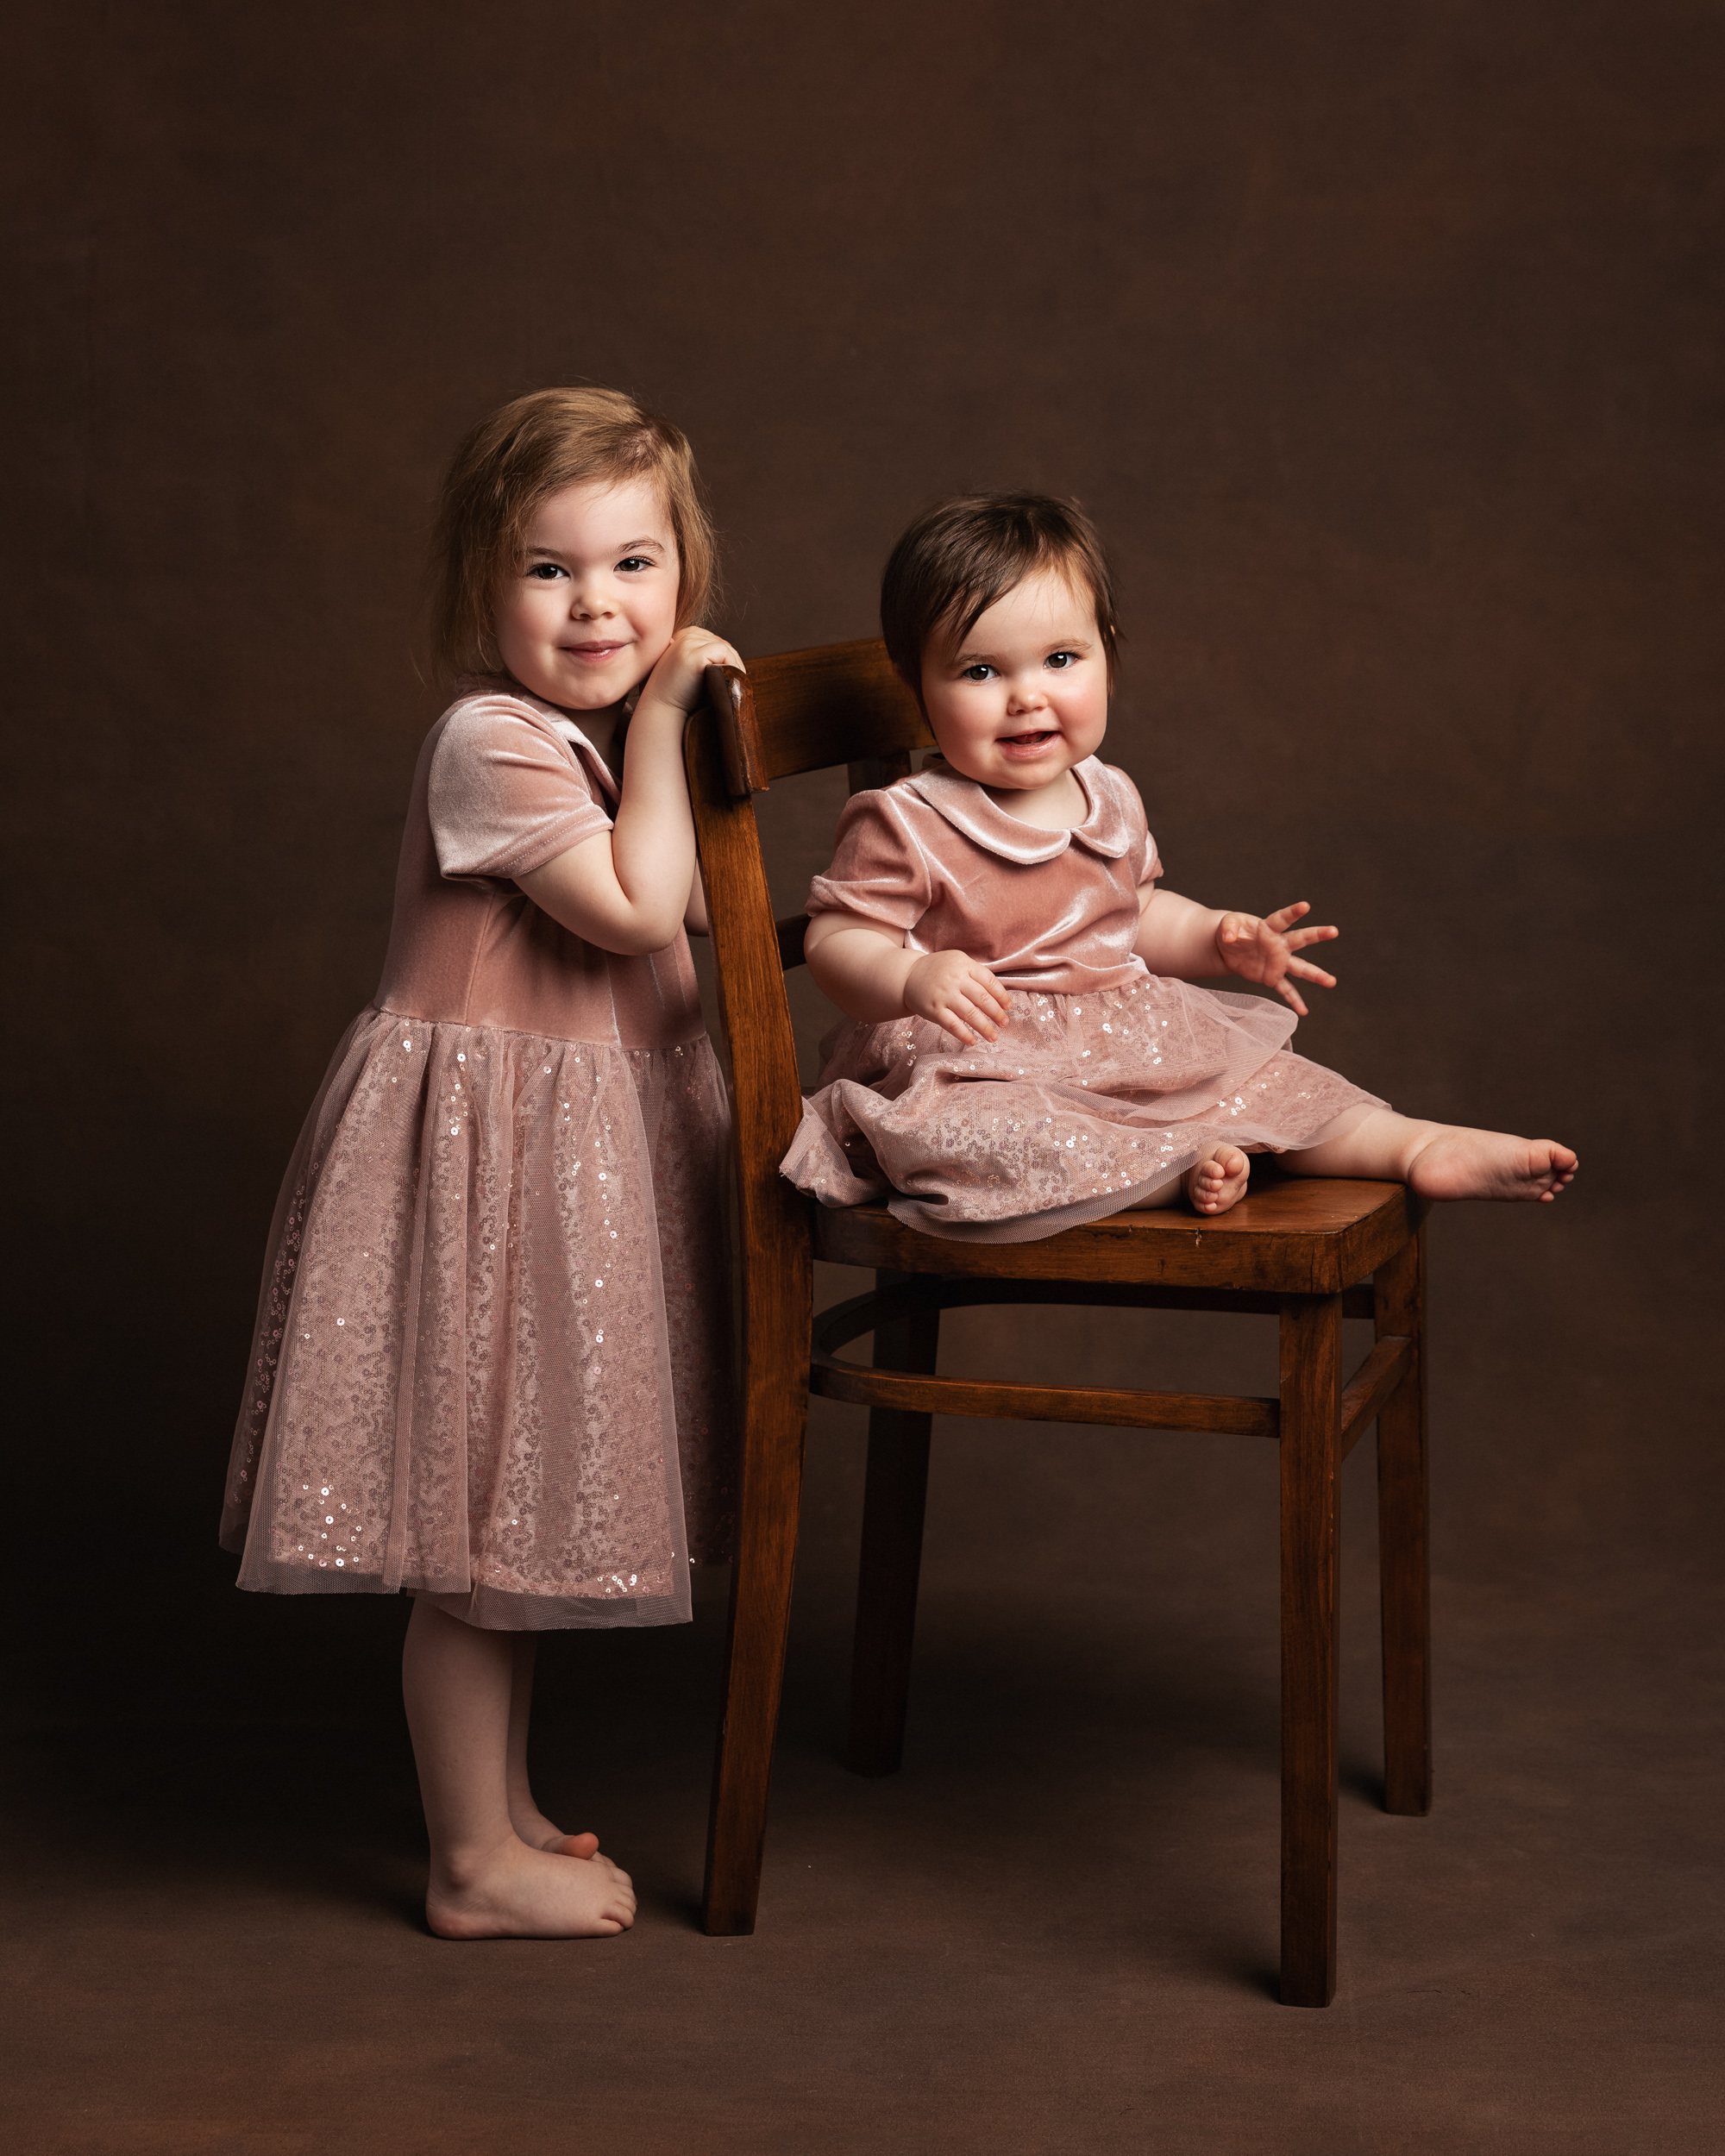 Sisters in the same pink dress posing together on a chair for their Family Portrait photo shoot in Cheshire